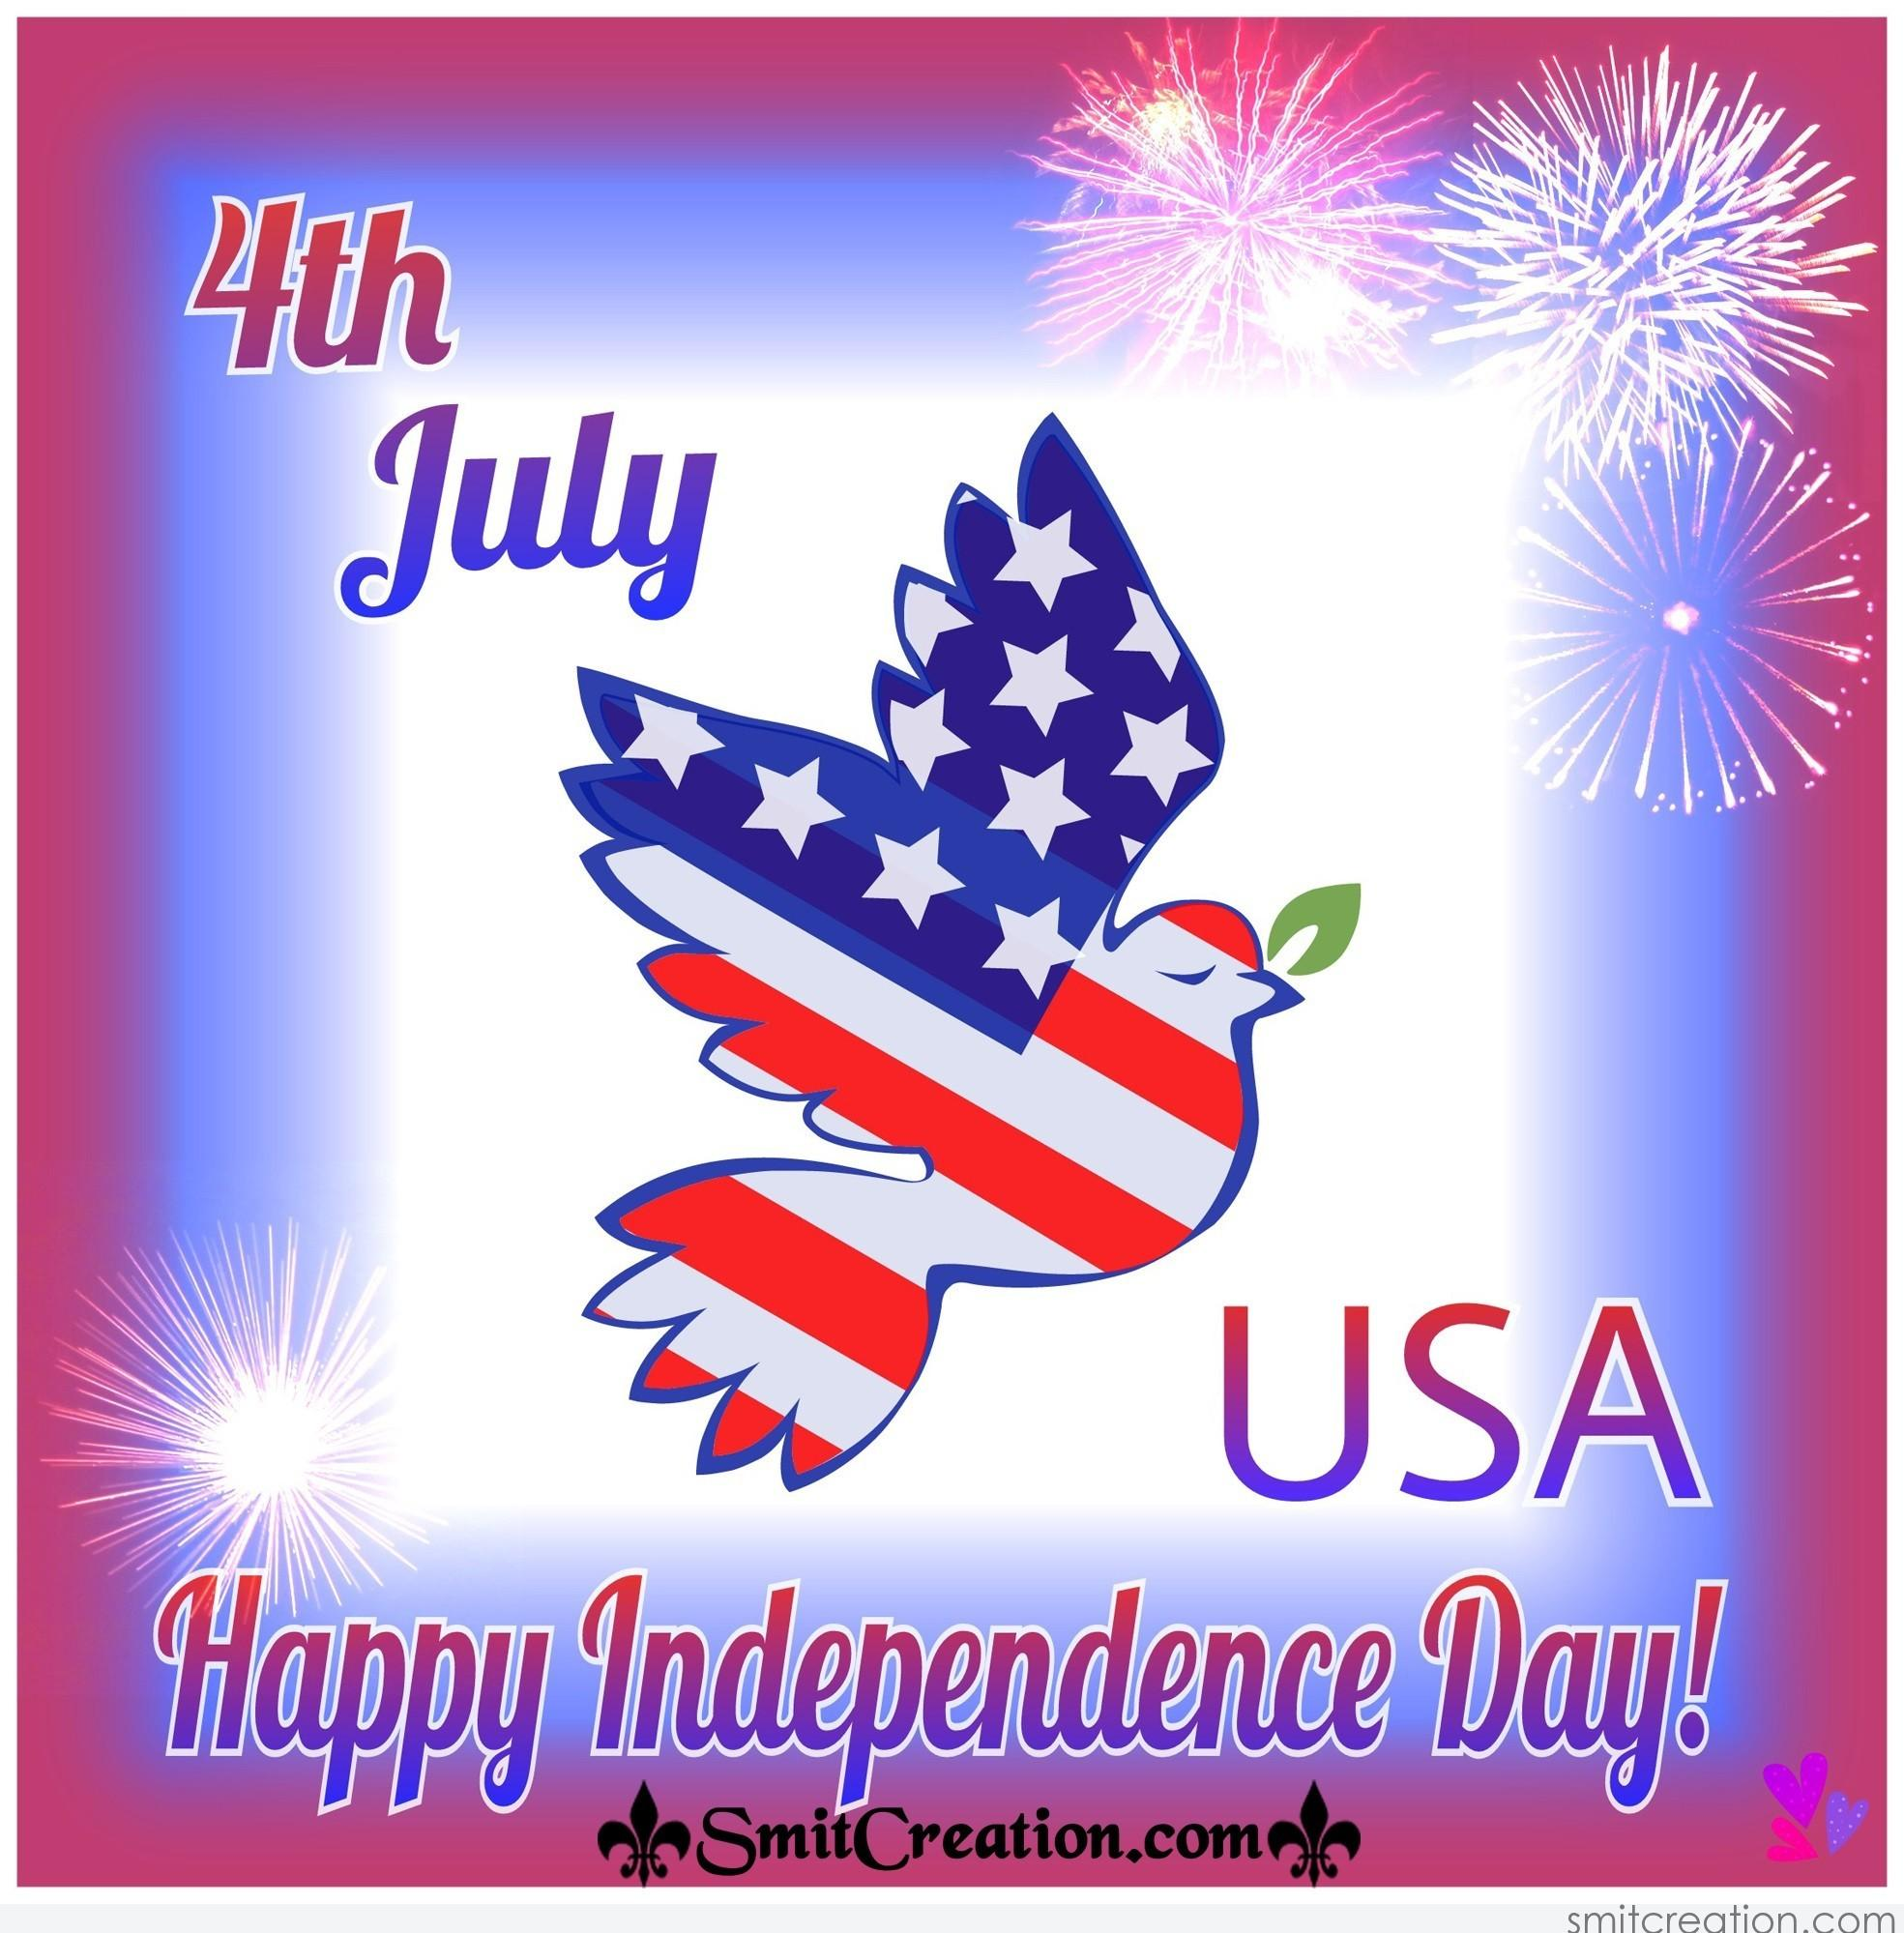 4th July Happy Independence Day Of Usa Smitcreation